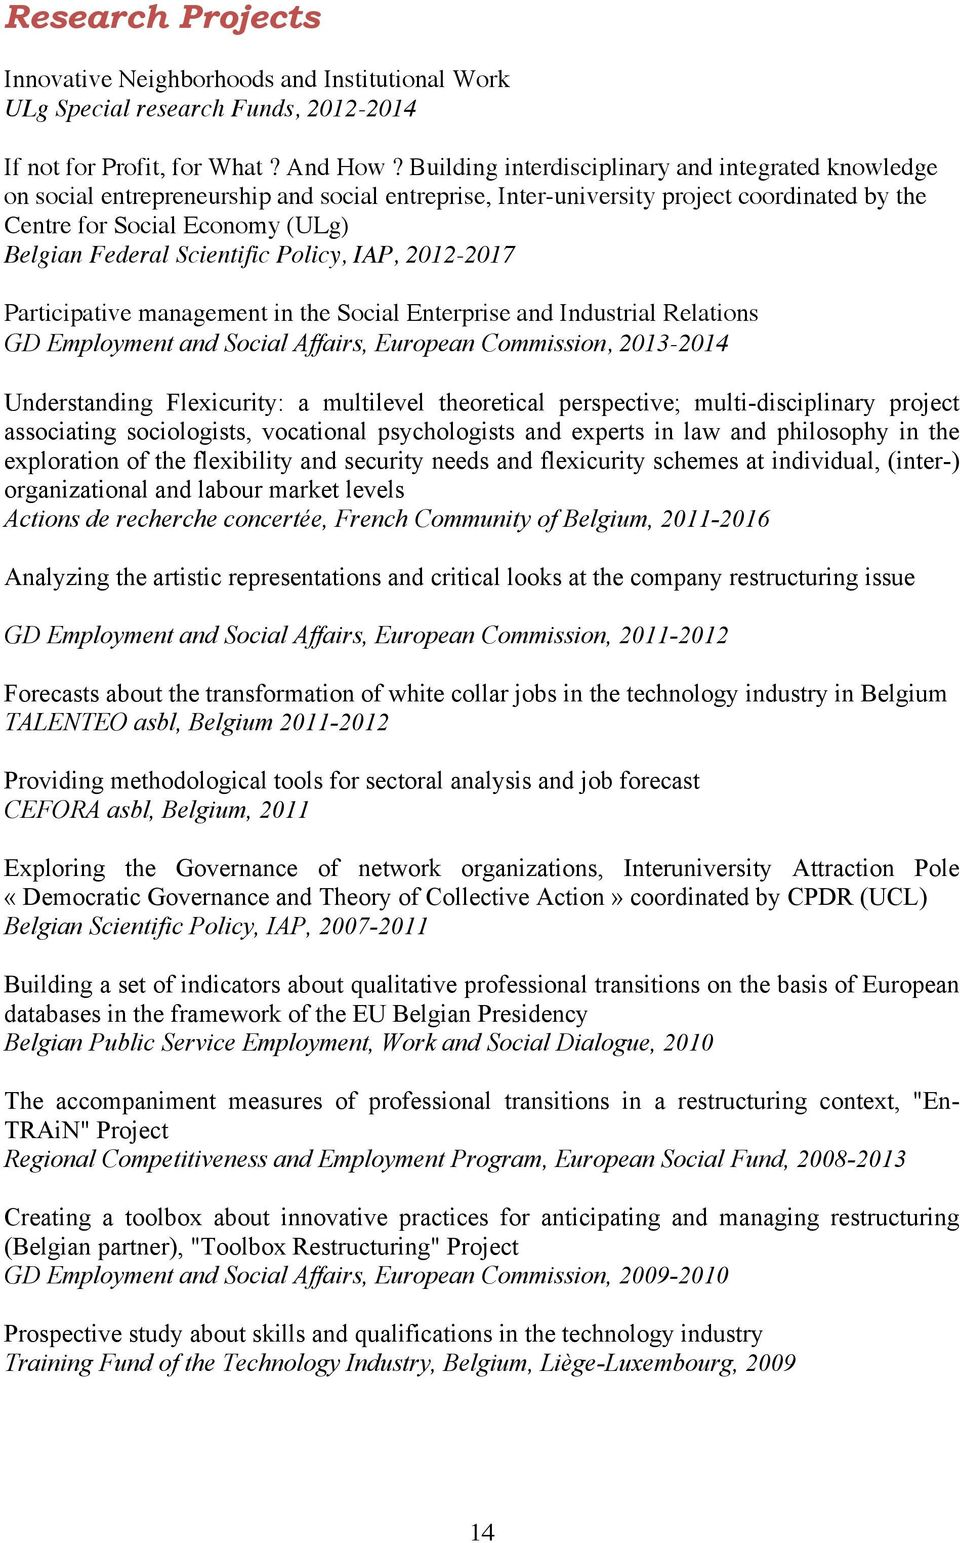 Scientific Policy, IAP, 2012-2017 Participative management in the Social Enterprise and Industrial Relations GD Employment and Social Affairs, European Commission, 2013-2014 Understanding